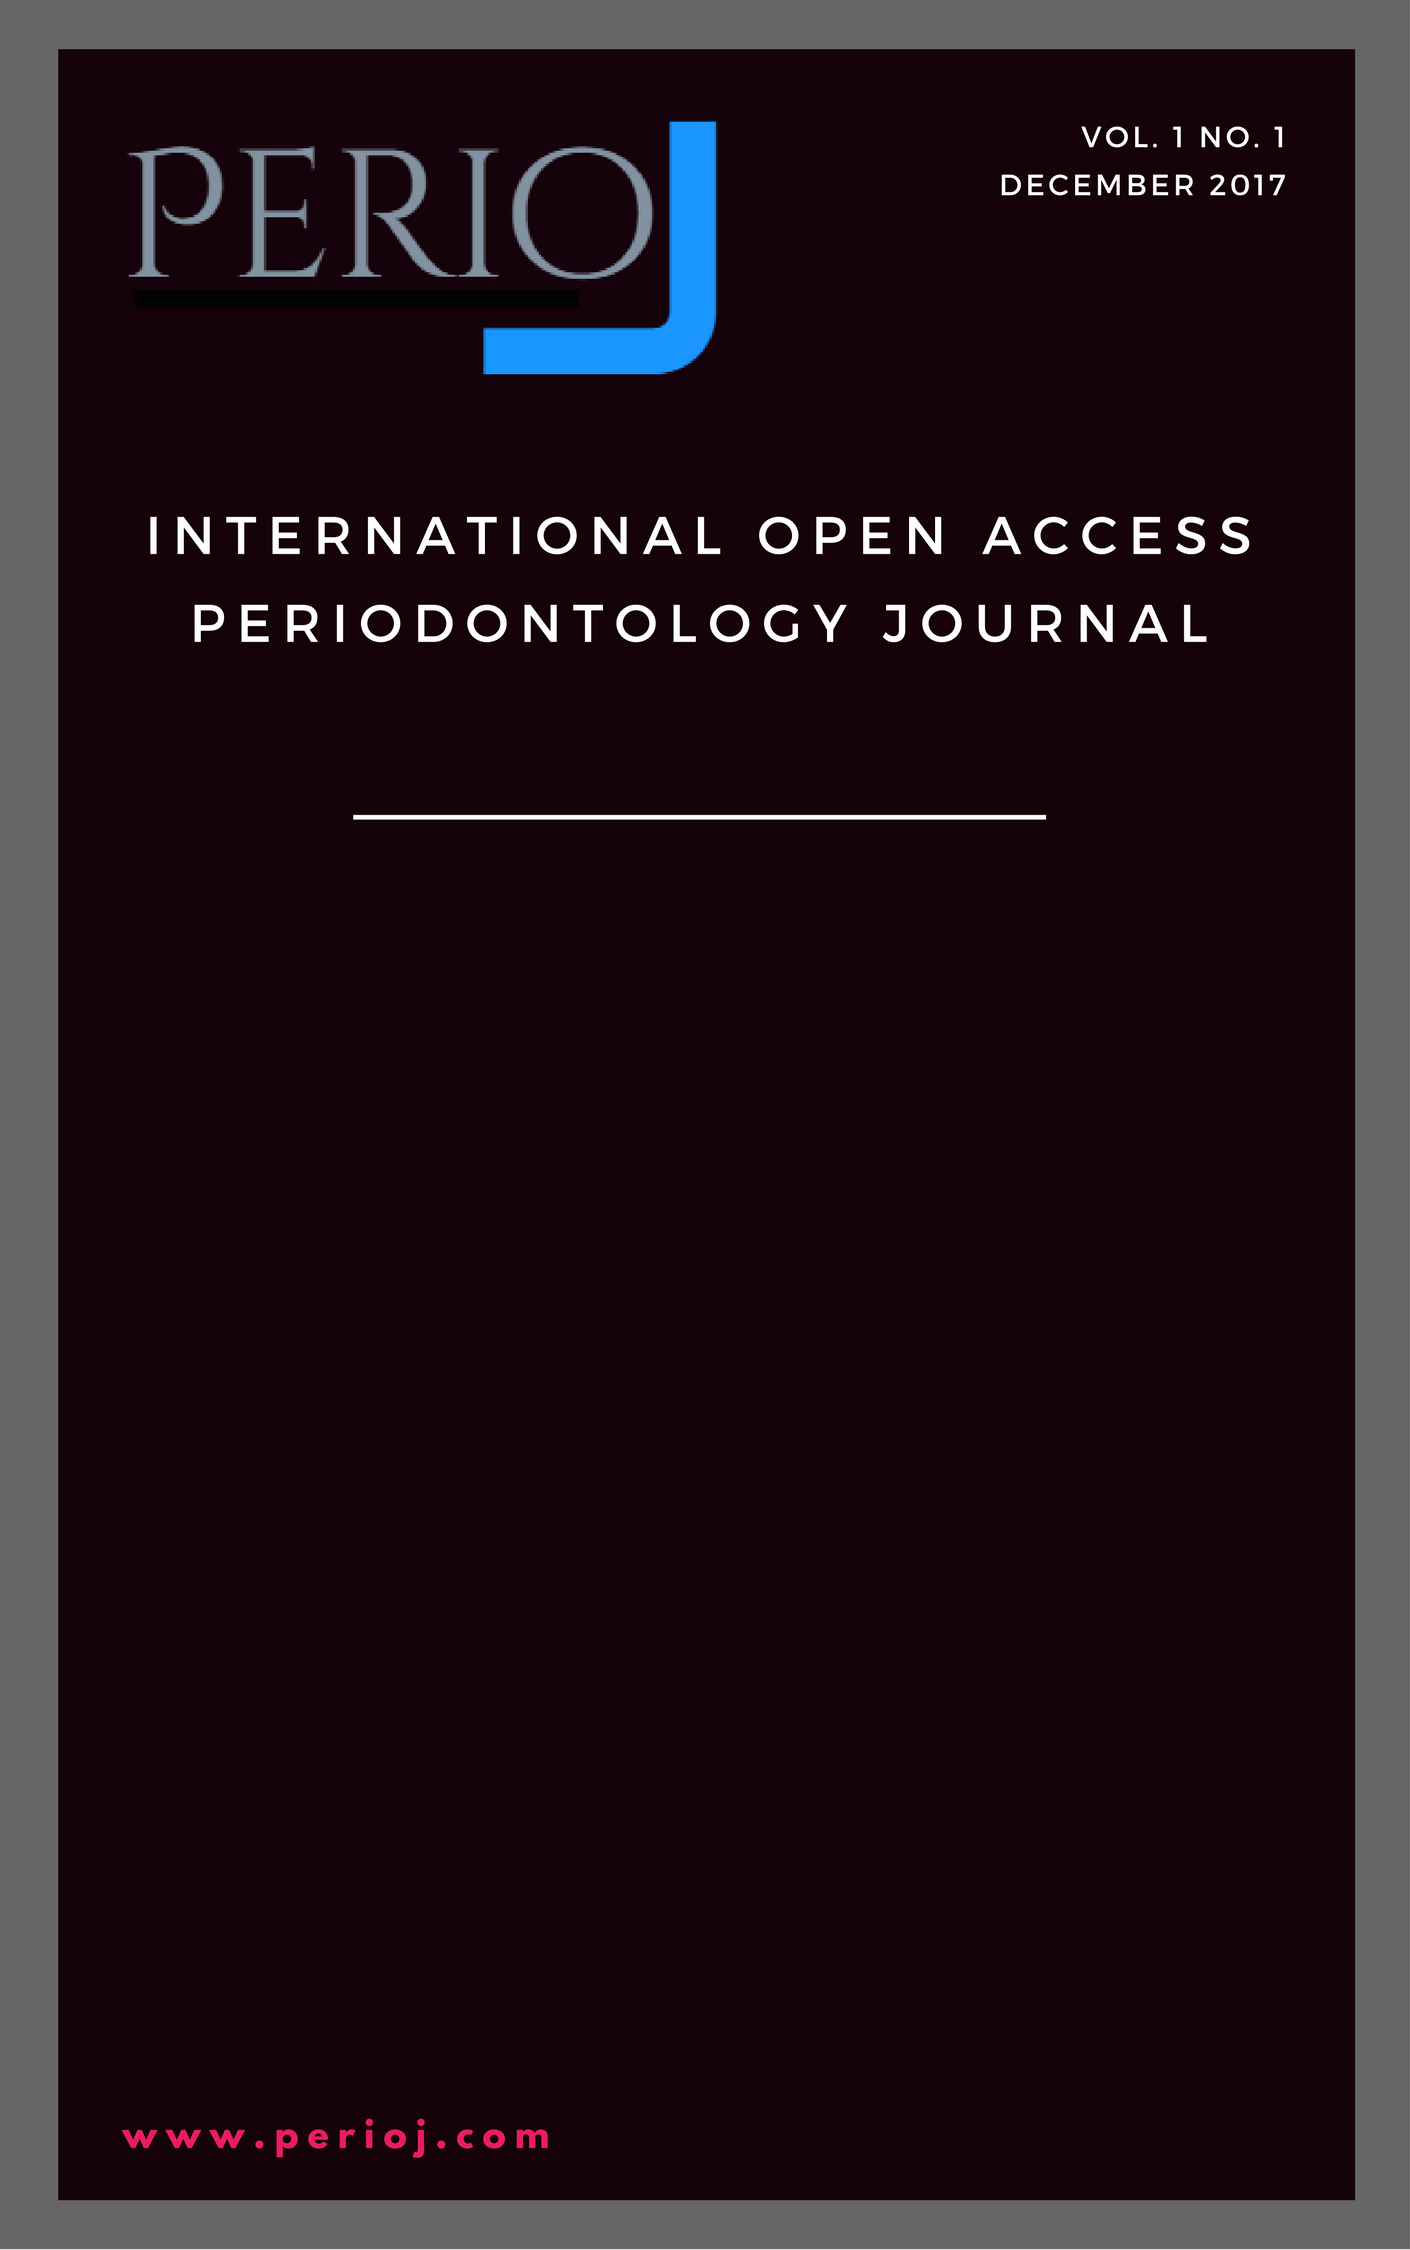 Perio J - International Open Access Periodontology Journal; Vol. 1 No. 1, December 2017; Cover Image